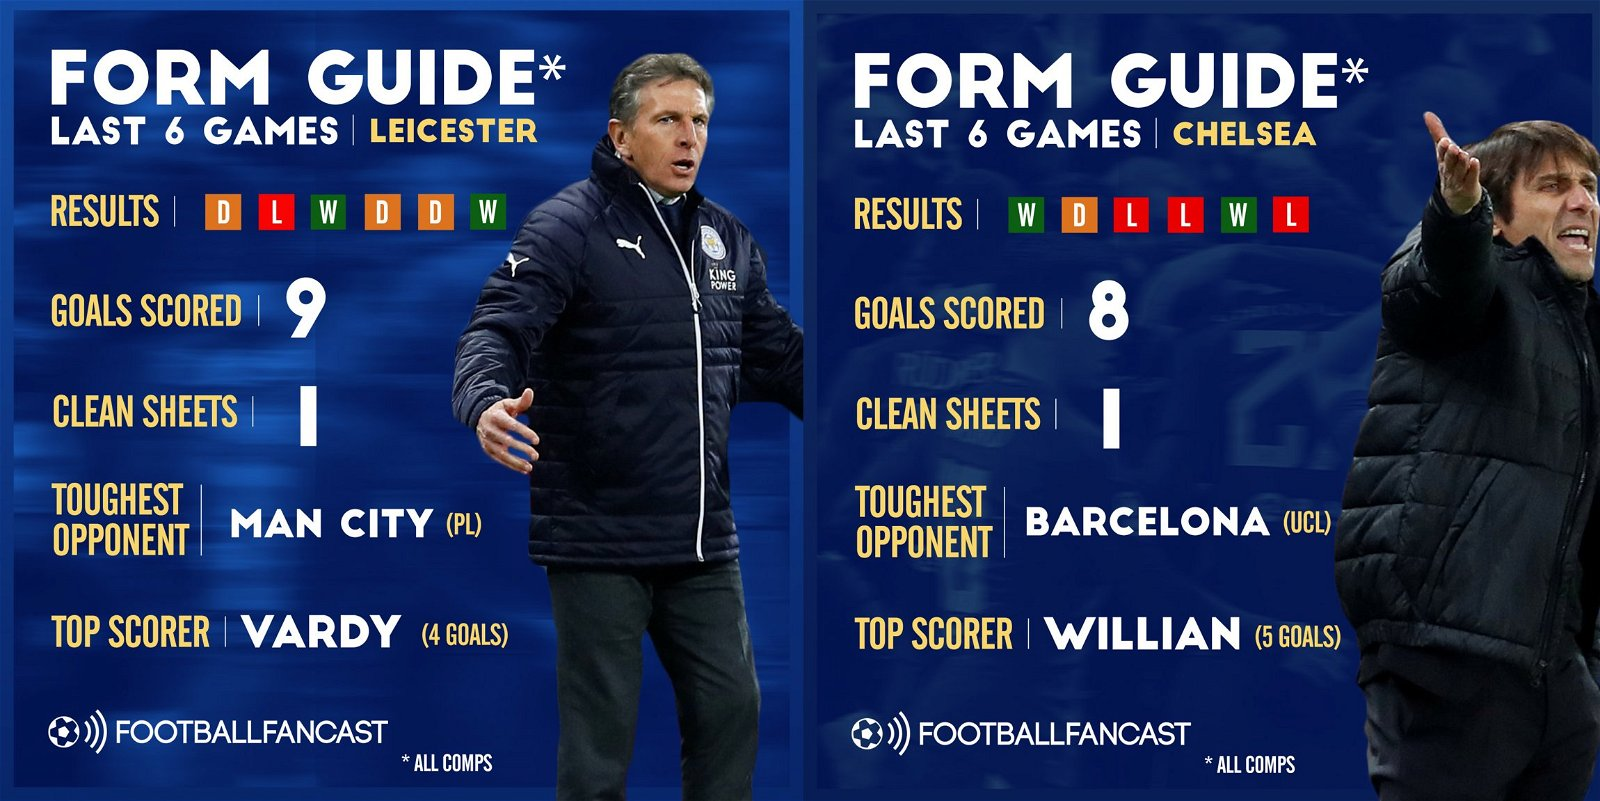 Leicester City vs Chelsea - Form Guide